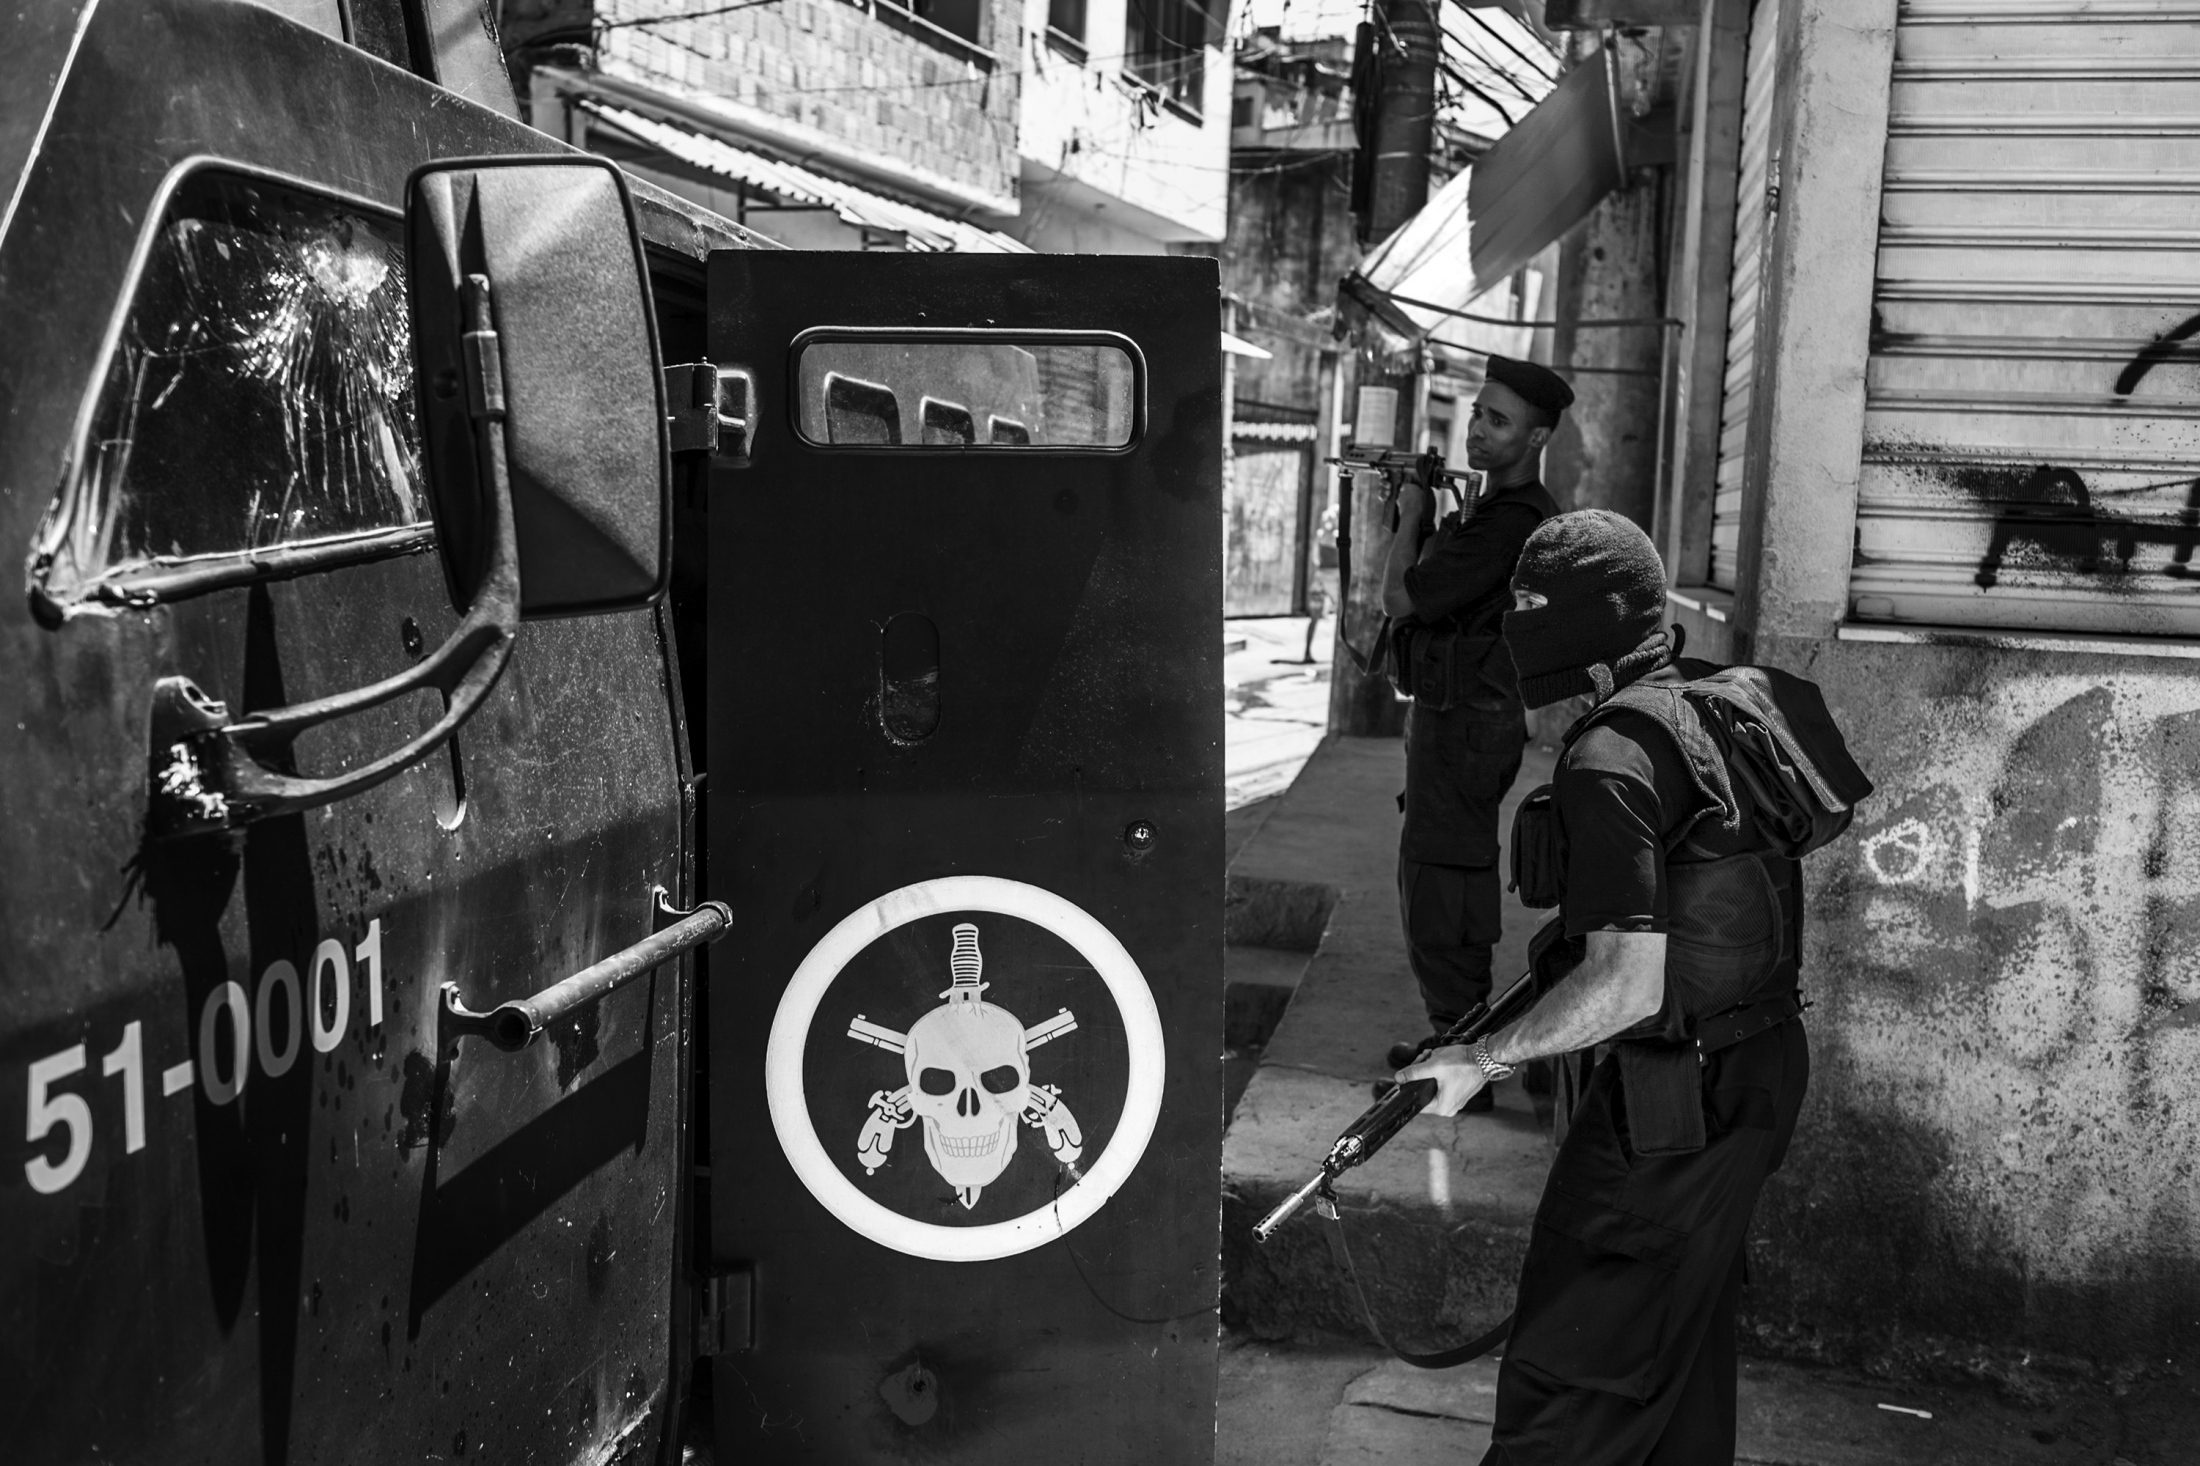 """Soldiers from the BOPE (Special operations unit from the Military Police) enter their armored car known as """"Caveirão"""" during a police operation against drug traffickers of the Red Command gang in Complexo do Alemão favela complex. March 2007."""